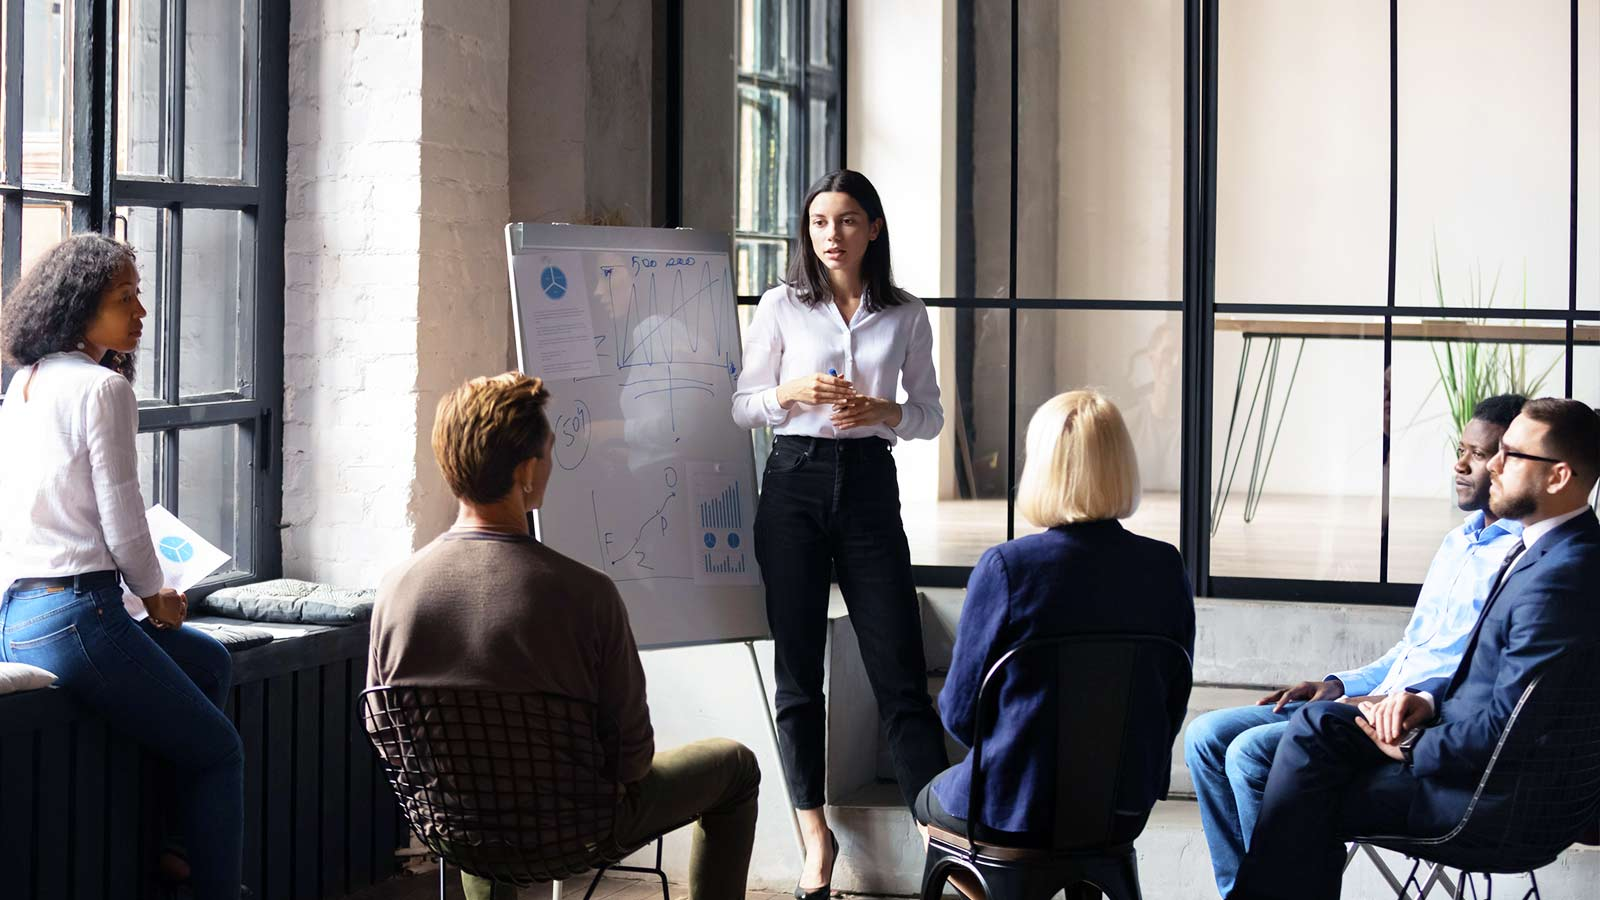 Woman leading meeting in an office.